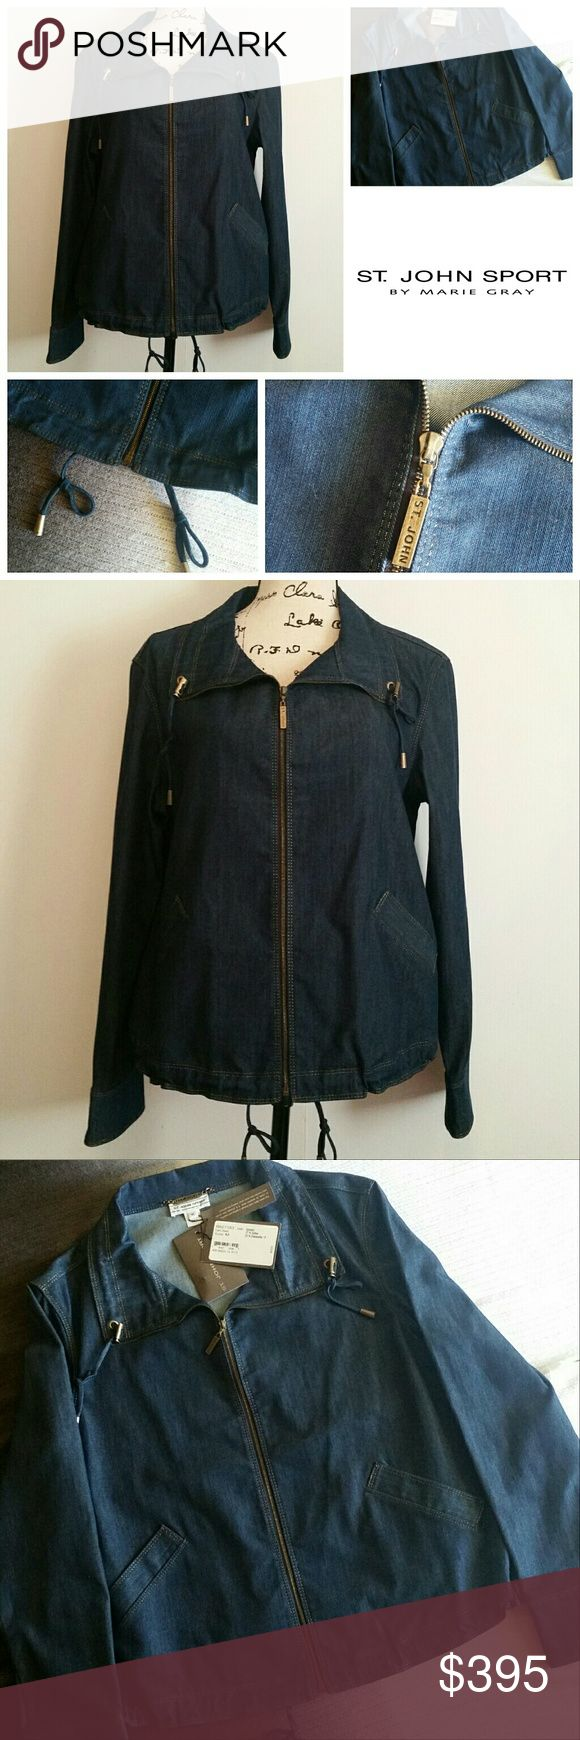 NWT! St. John Sport Jean Sailing Jacket Exquisite! New with tags. Never worn. Perfect condition. Gold threading. Cinching ties on the collar and the waist line. Jean material that is UBER soft! Feels like butter. Sailing jacket, but can be worn anytime, any day! Dark wash. 77% Cotton 23% Elasterelle. Size Medium. Packet with extra hardware. Enjoy!! St. John Jackets & Coats Jean Jackets